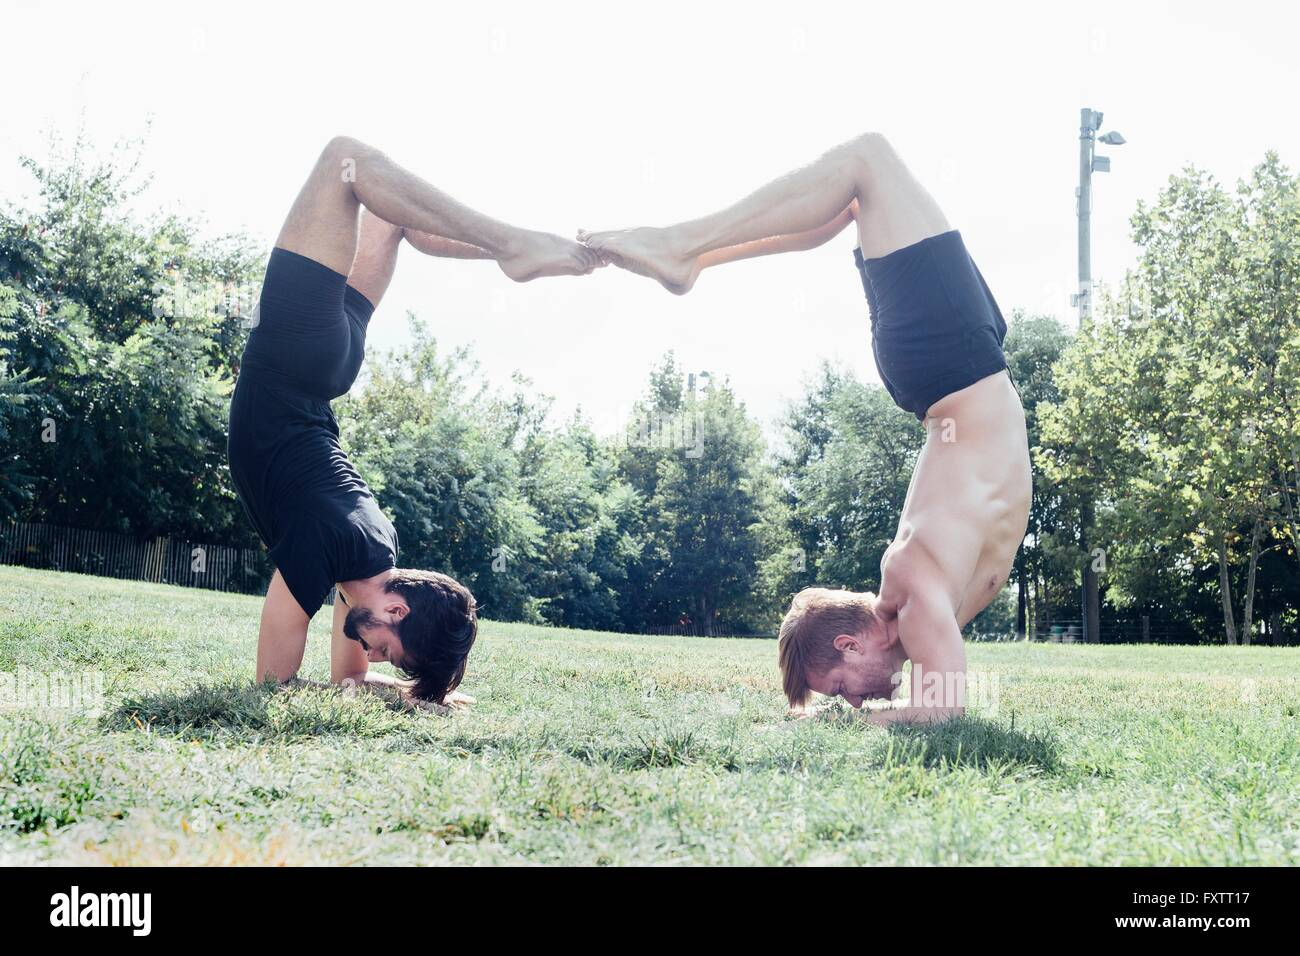 Two men poised upside down in yoga position in park - Stock Image